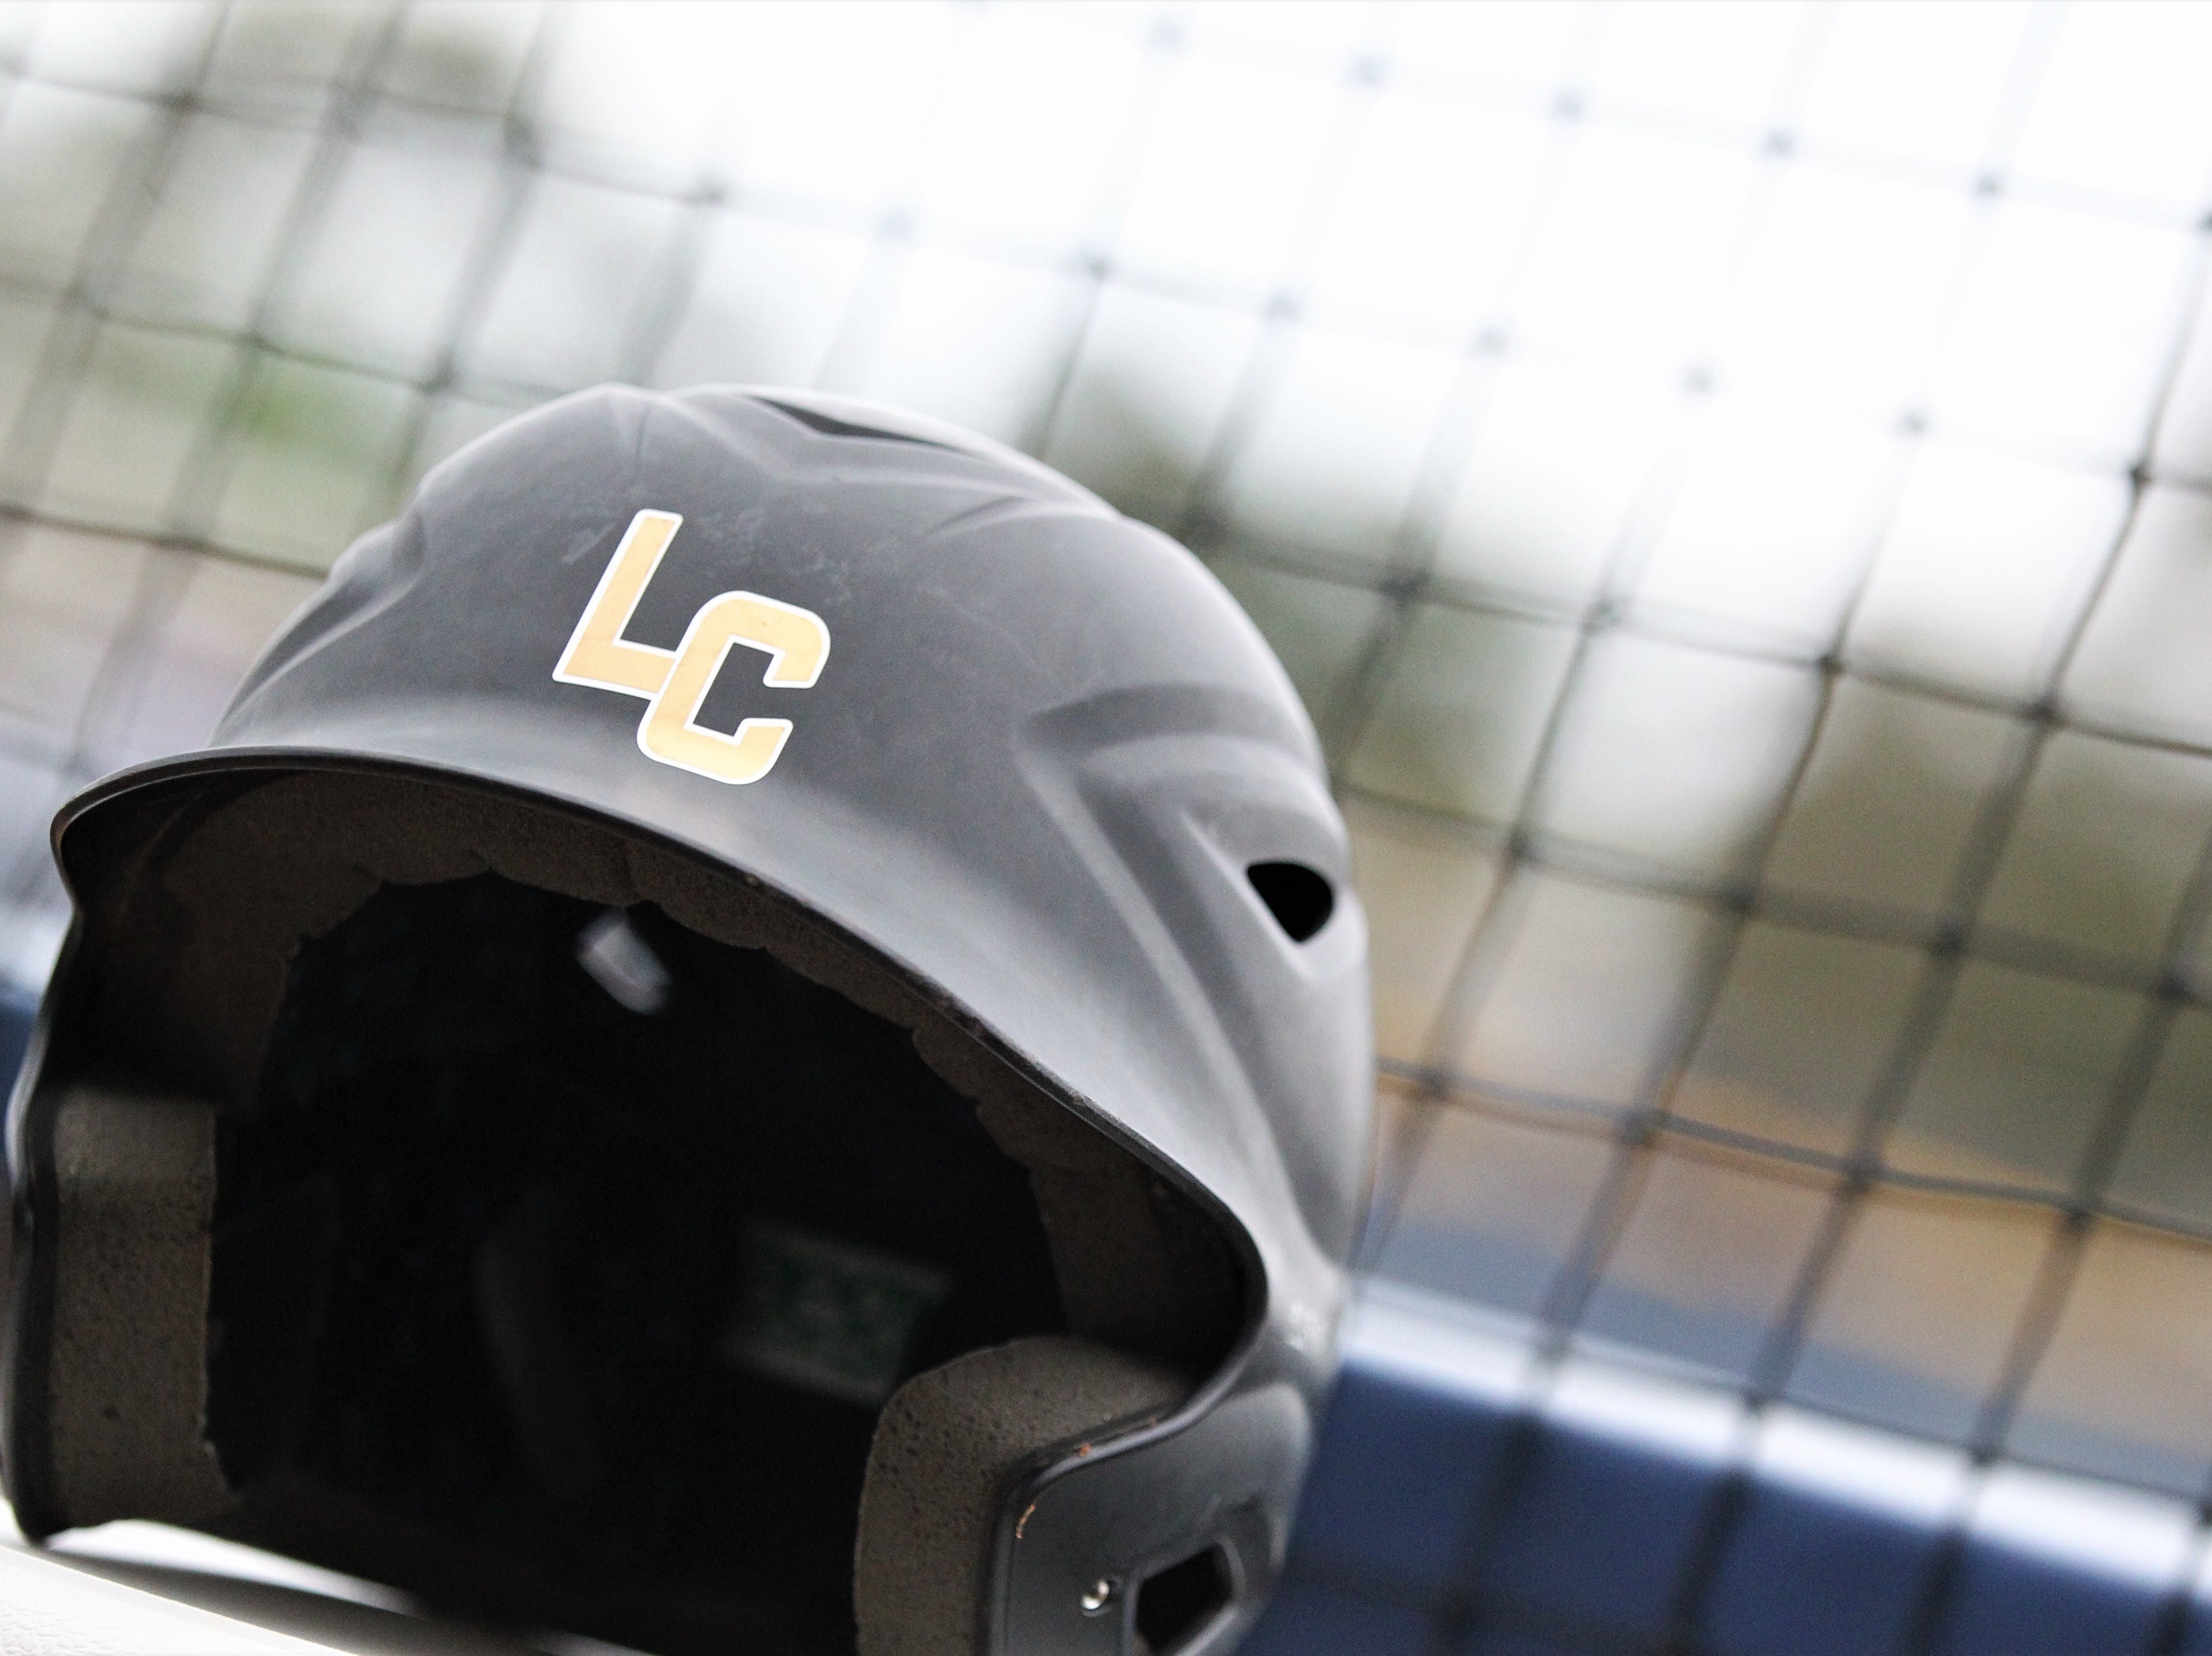 Liberty County's baseball team went on the road to beat Maclay 8-2 on Saturday, March 16, 2019. The Bulldogs played their first game following their head coach Corey Crum's tragic death six days ago.